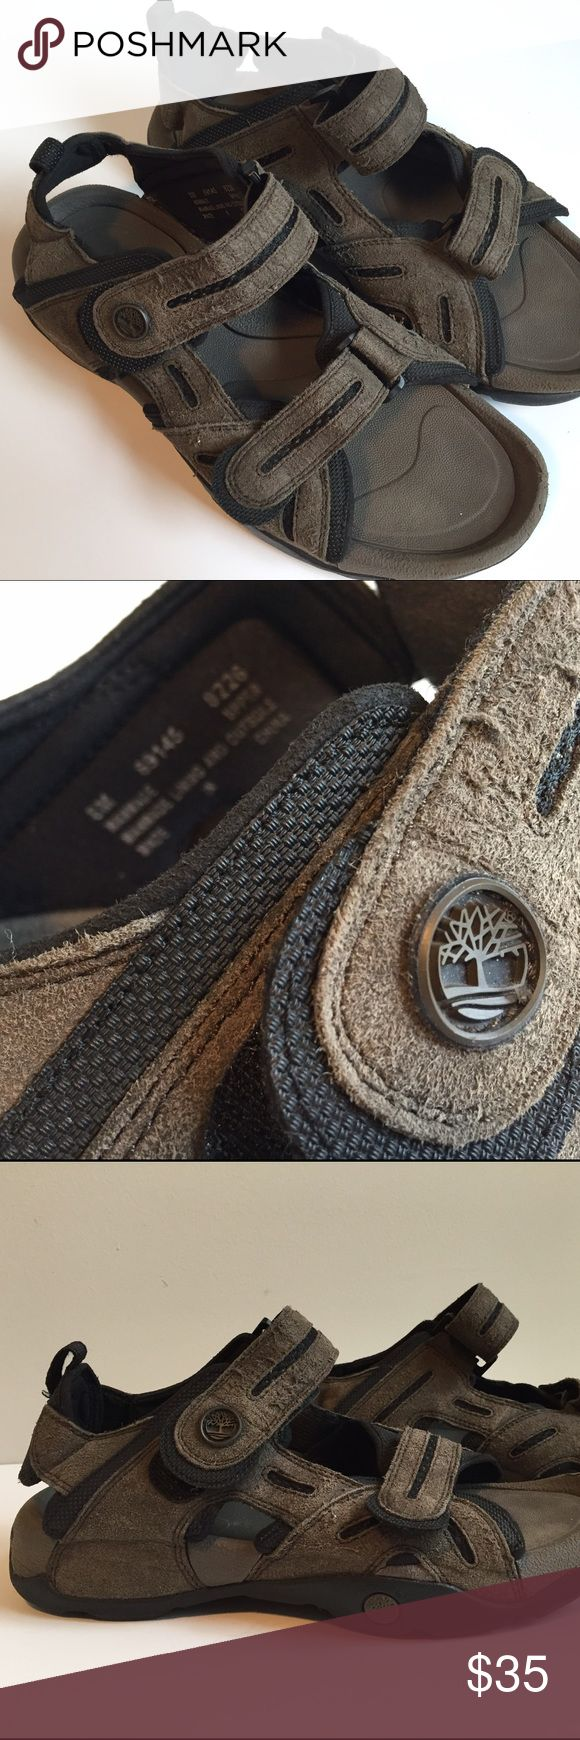 TIMBERLAND 🌳 quality mens sturdy sandal spring Very good condition high quality pre owned Timberland brand brown shoes sandals. These spring summer sandals are in great condition and are ready for some barbecue action! Mens size 8 , featuring straps around the toes and ankles for a secure and perfect fit 👌🏽 Timberland Shoes Sandals & Flip-Flops